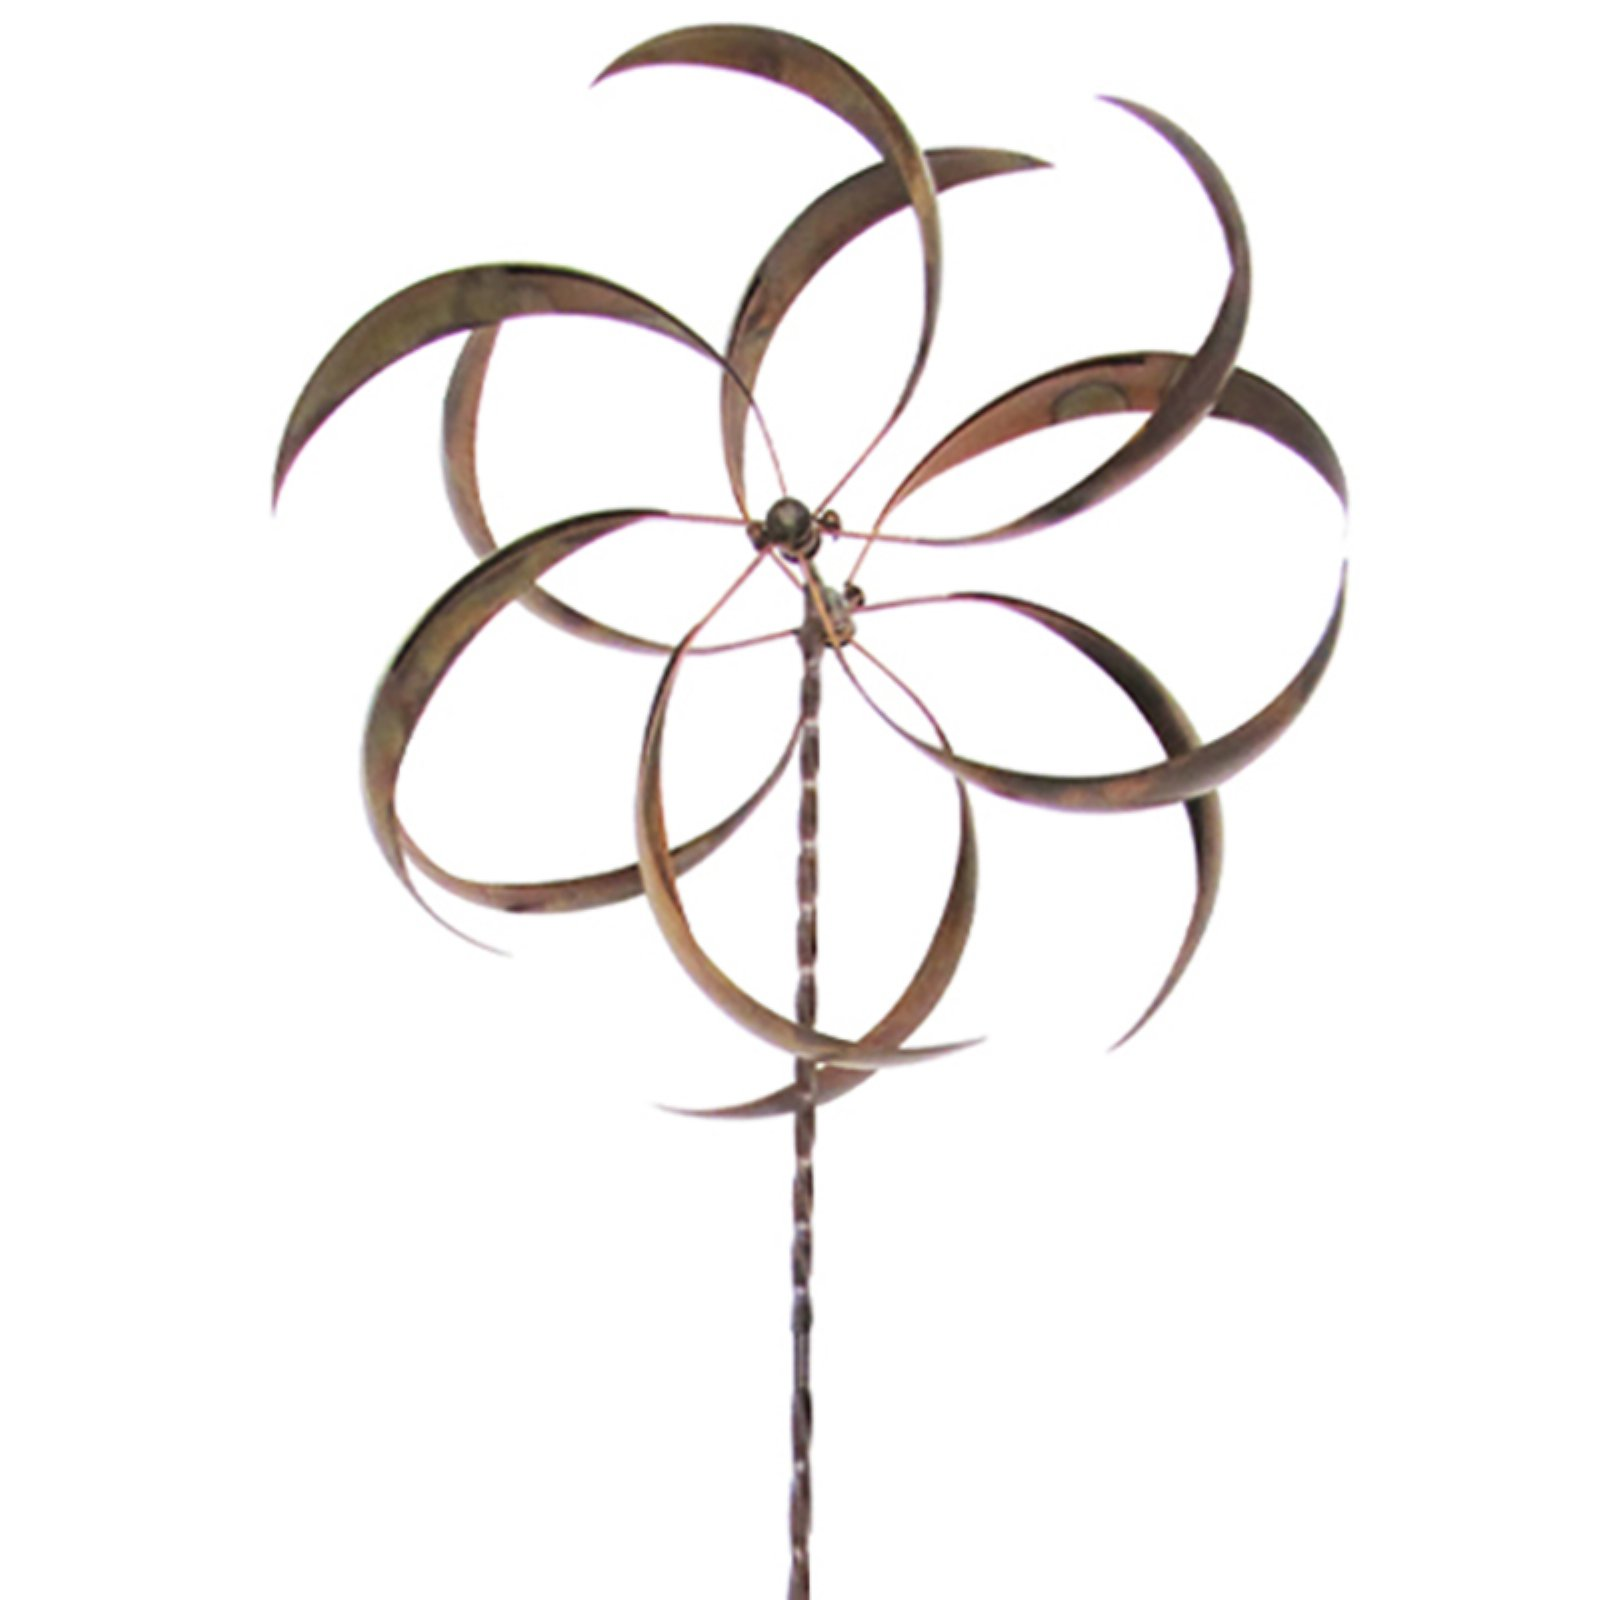 Leigh Country Curved Leaf Wind Spinner by Wind Spinners